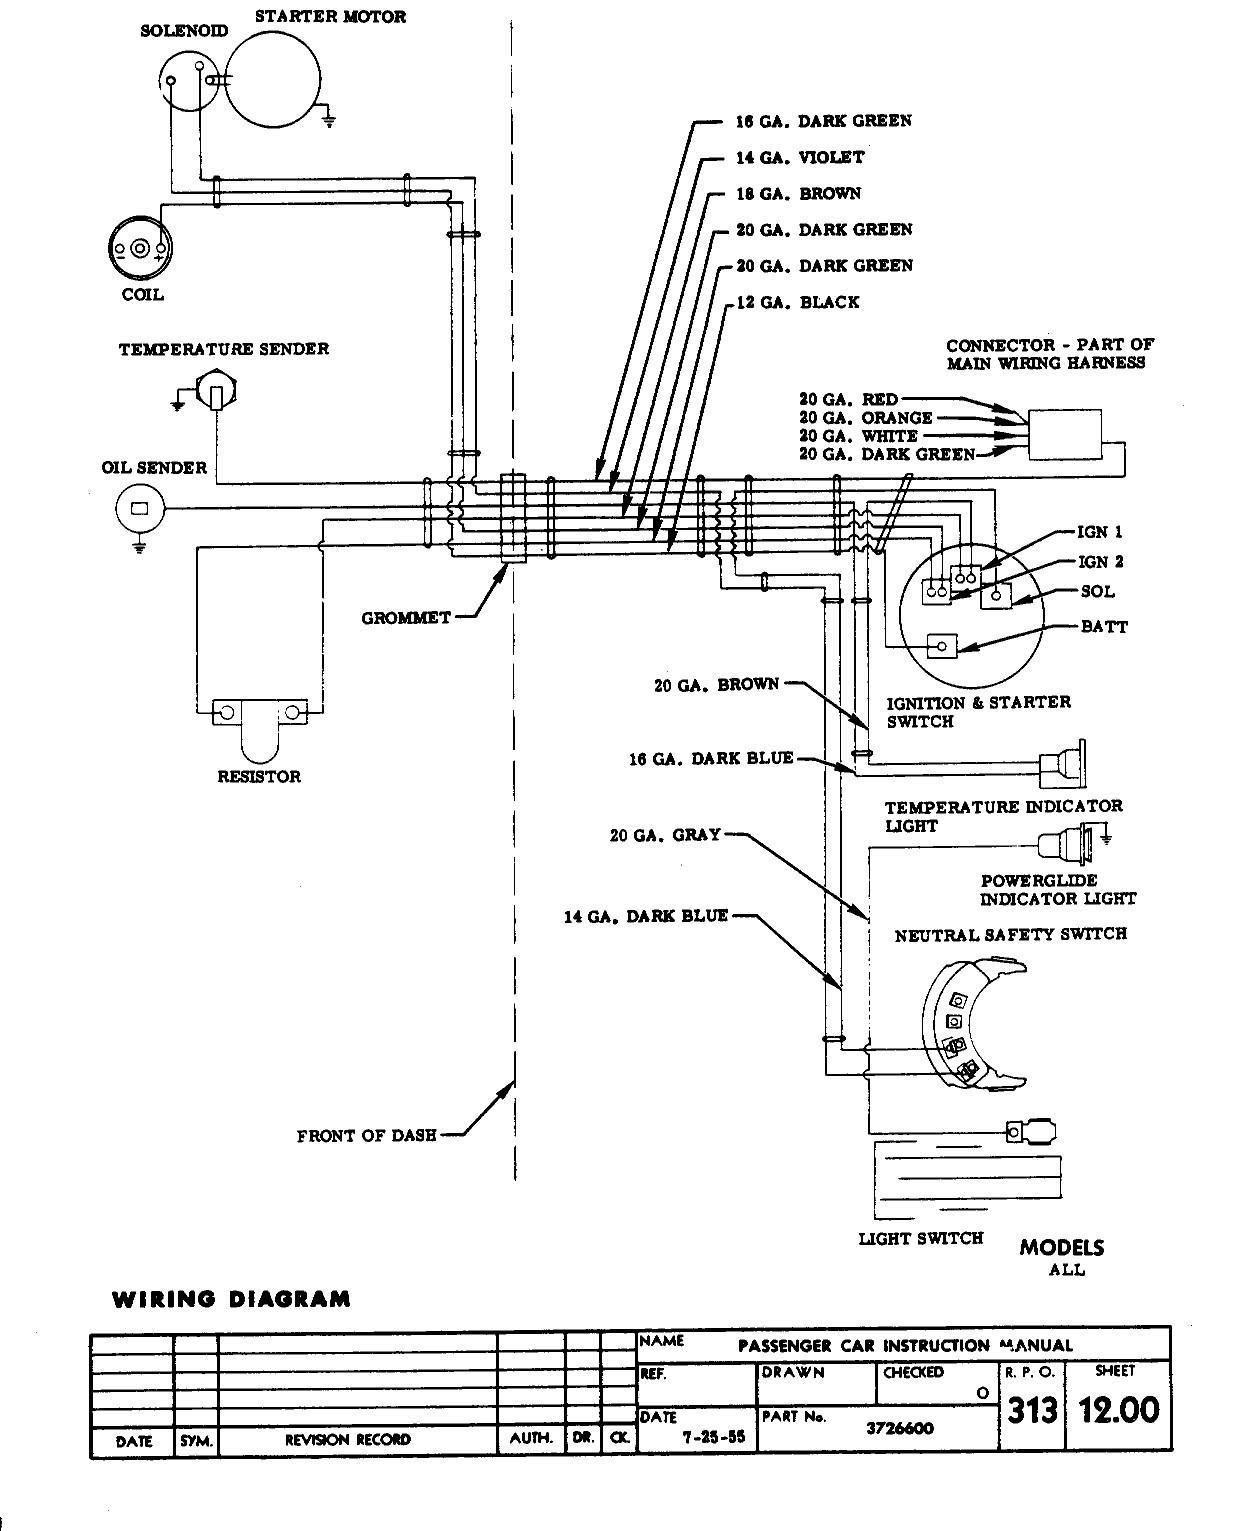 Safety Circuit Wiring Diagram from i0.wp.com